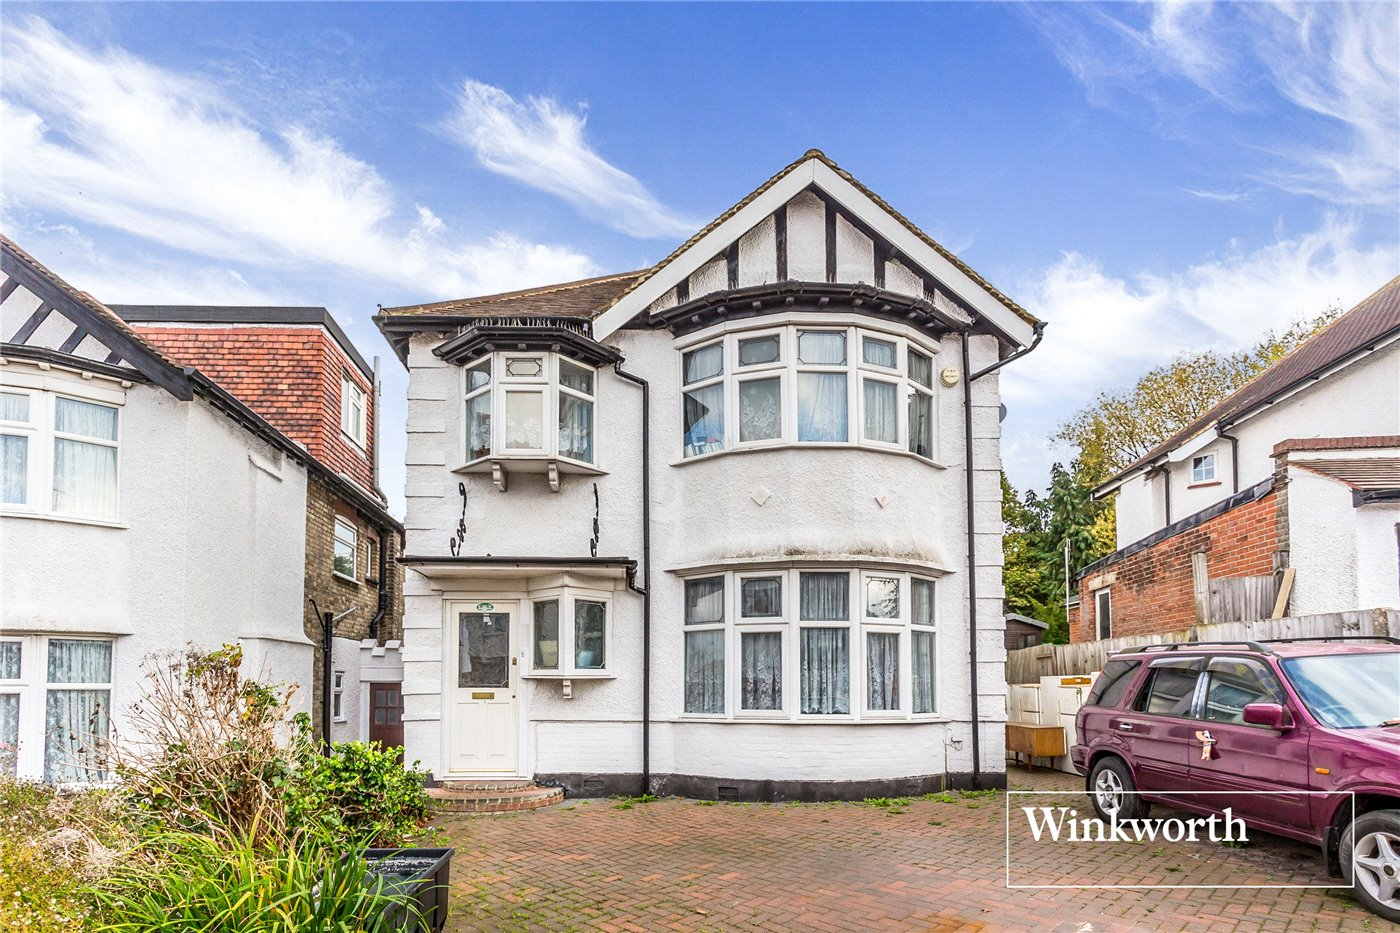 4 Bedrooms Detached House for sale in Courthouse Road, West Finchley, London, N12